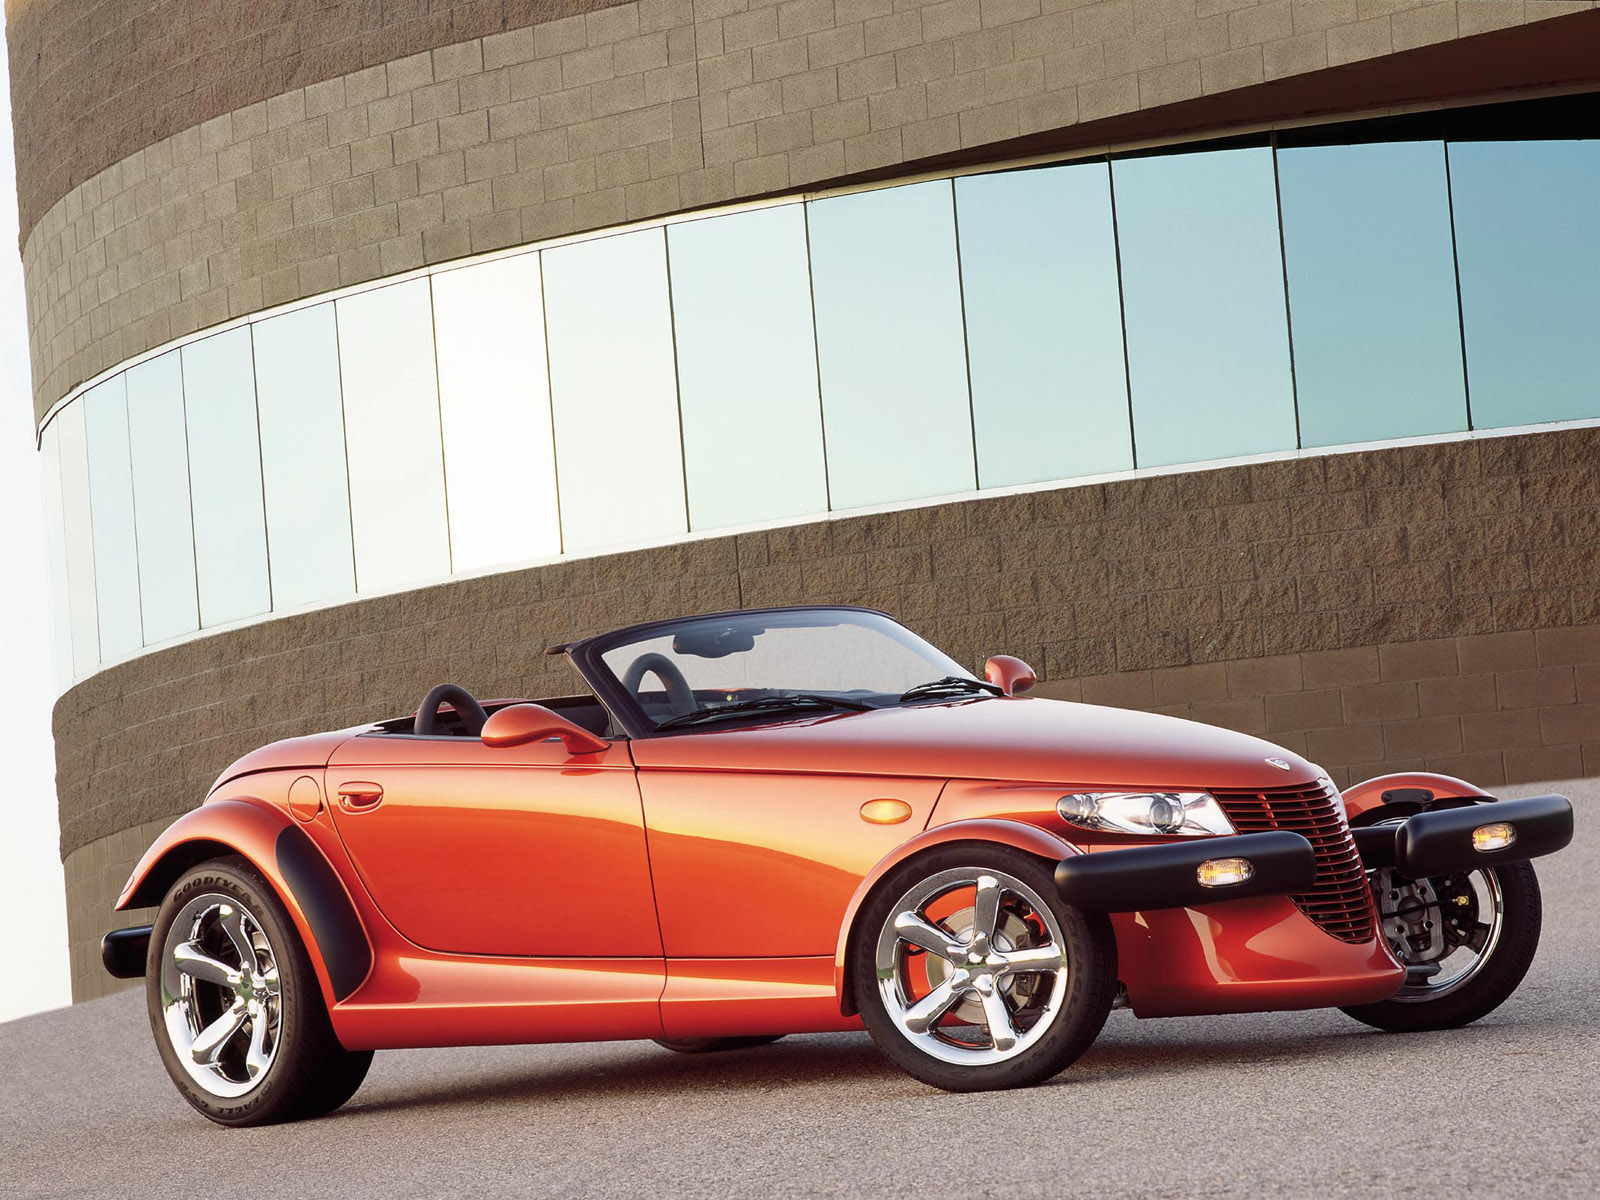 2001 Plymouth Prowler #11 Plymouth Prowler #11